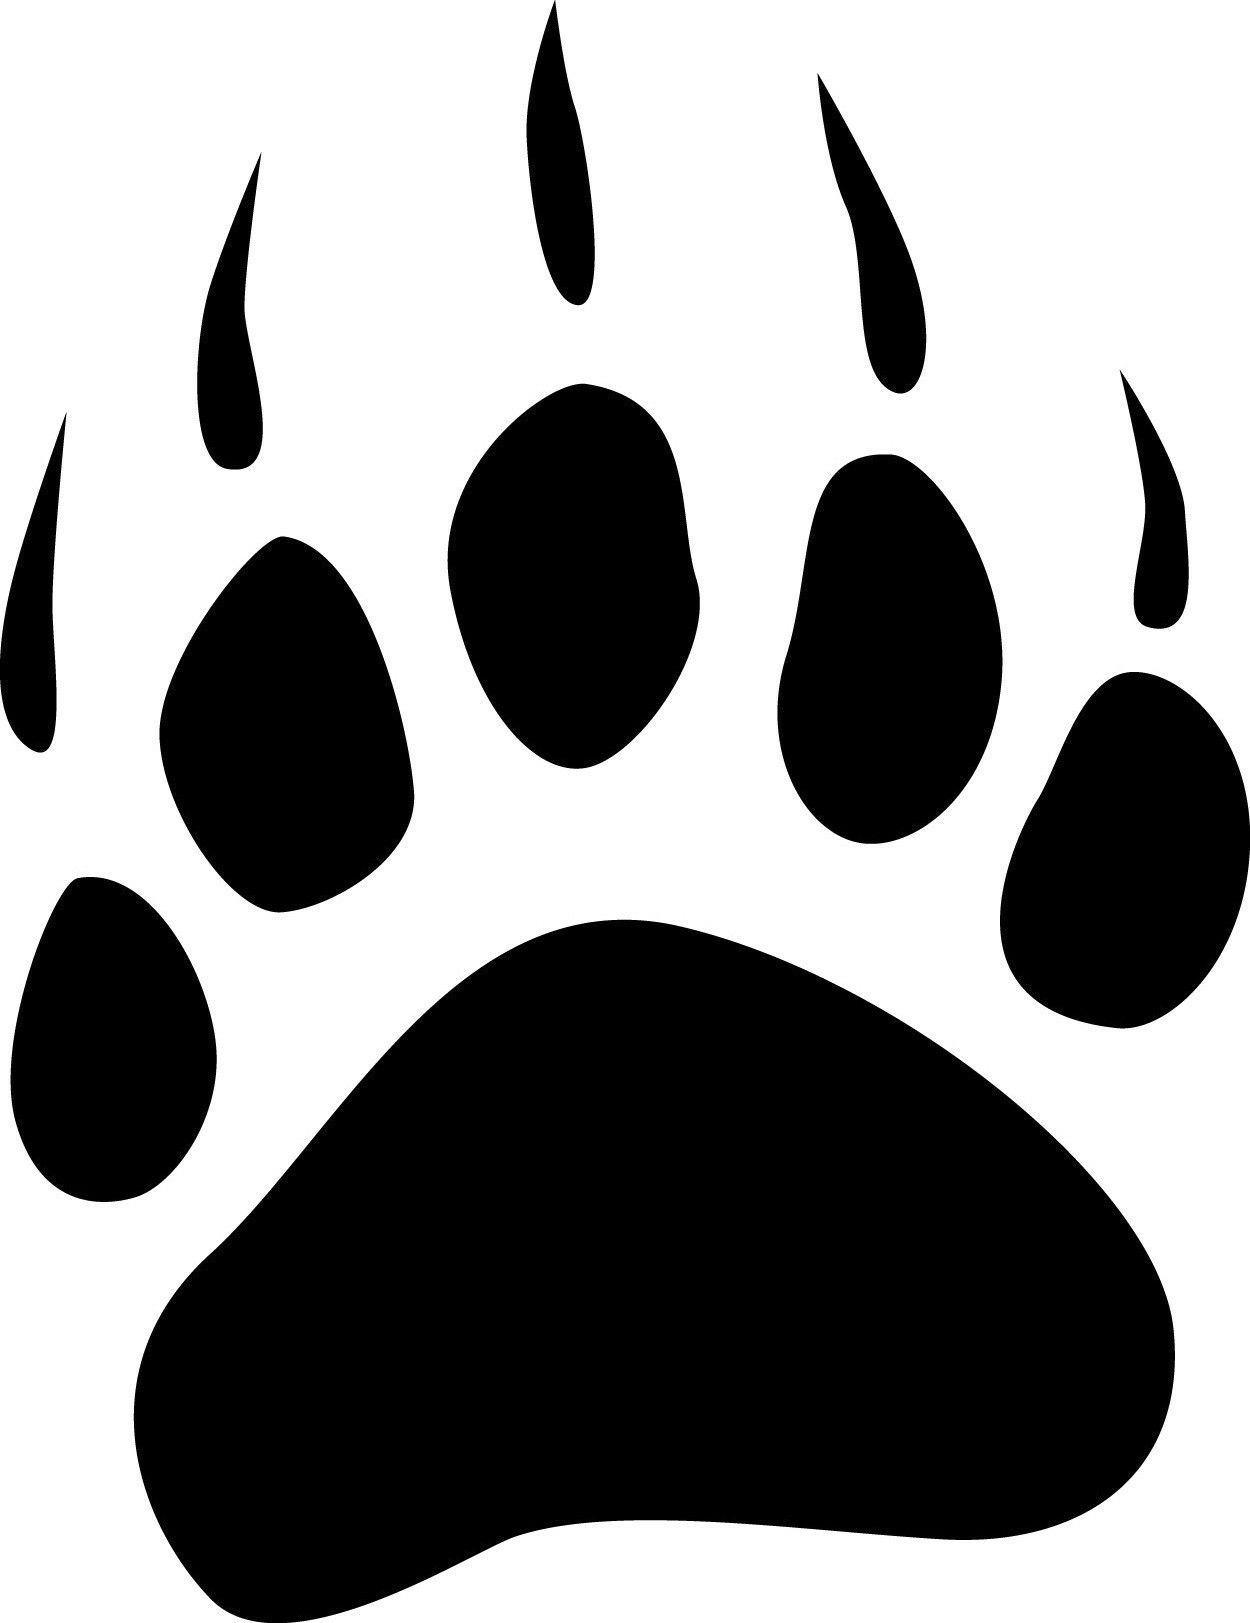 Pin By Abe Bingham On Tattoo Ideas Bear Paw Print Bear Paw